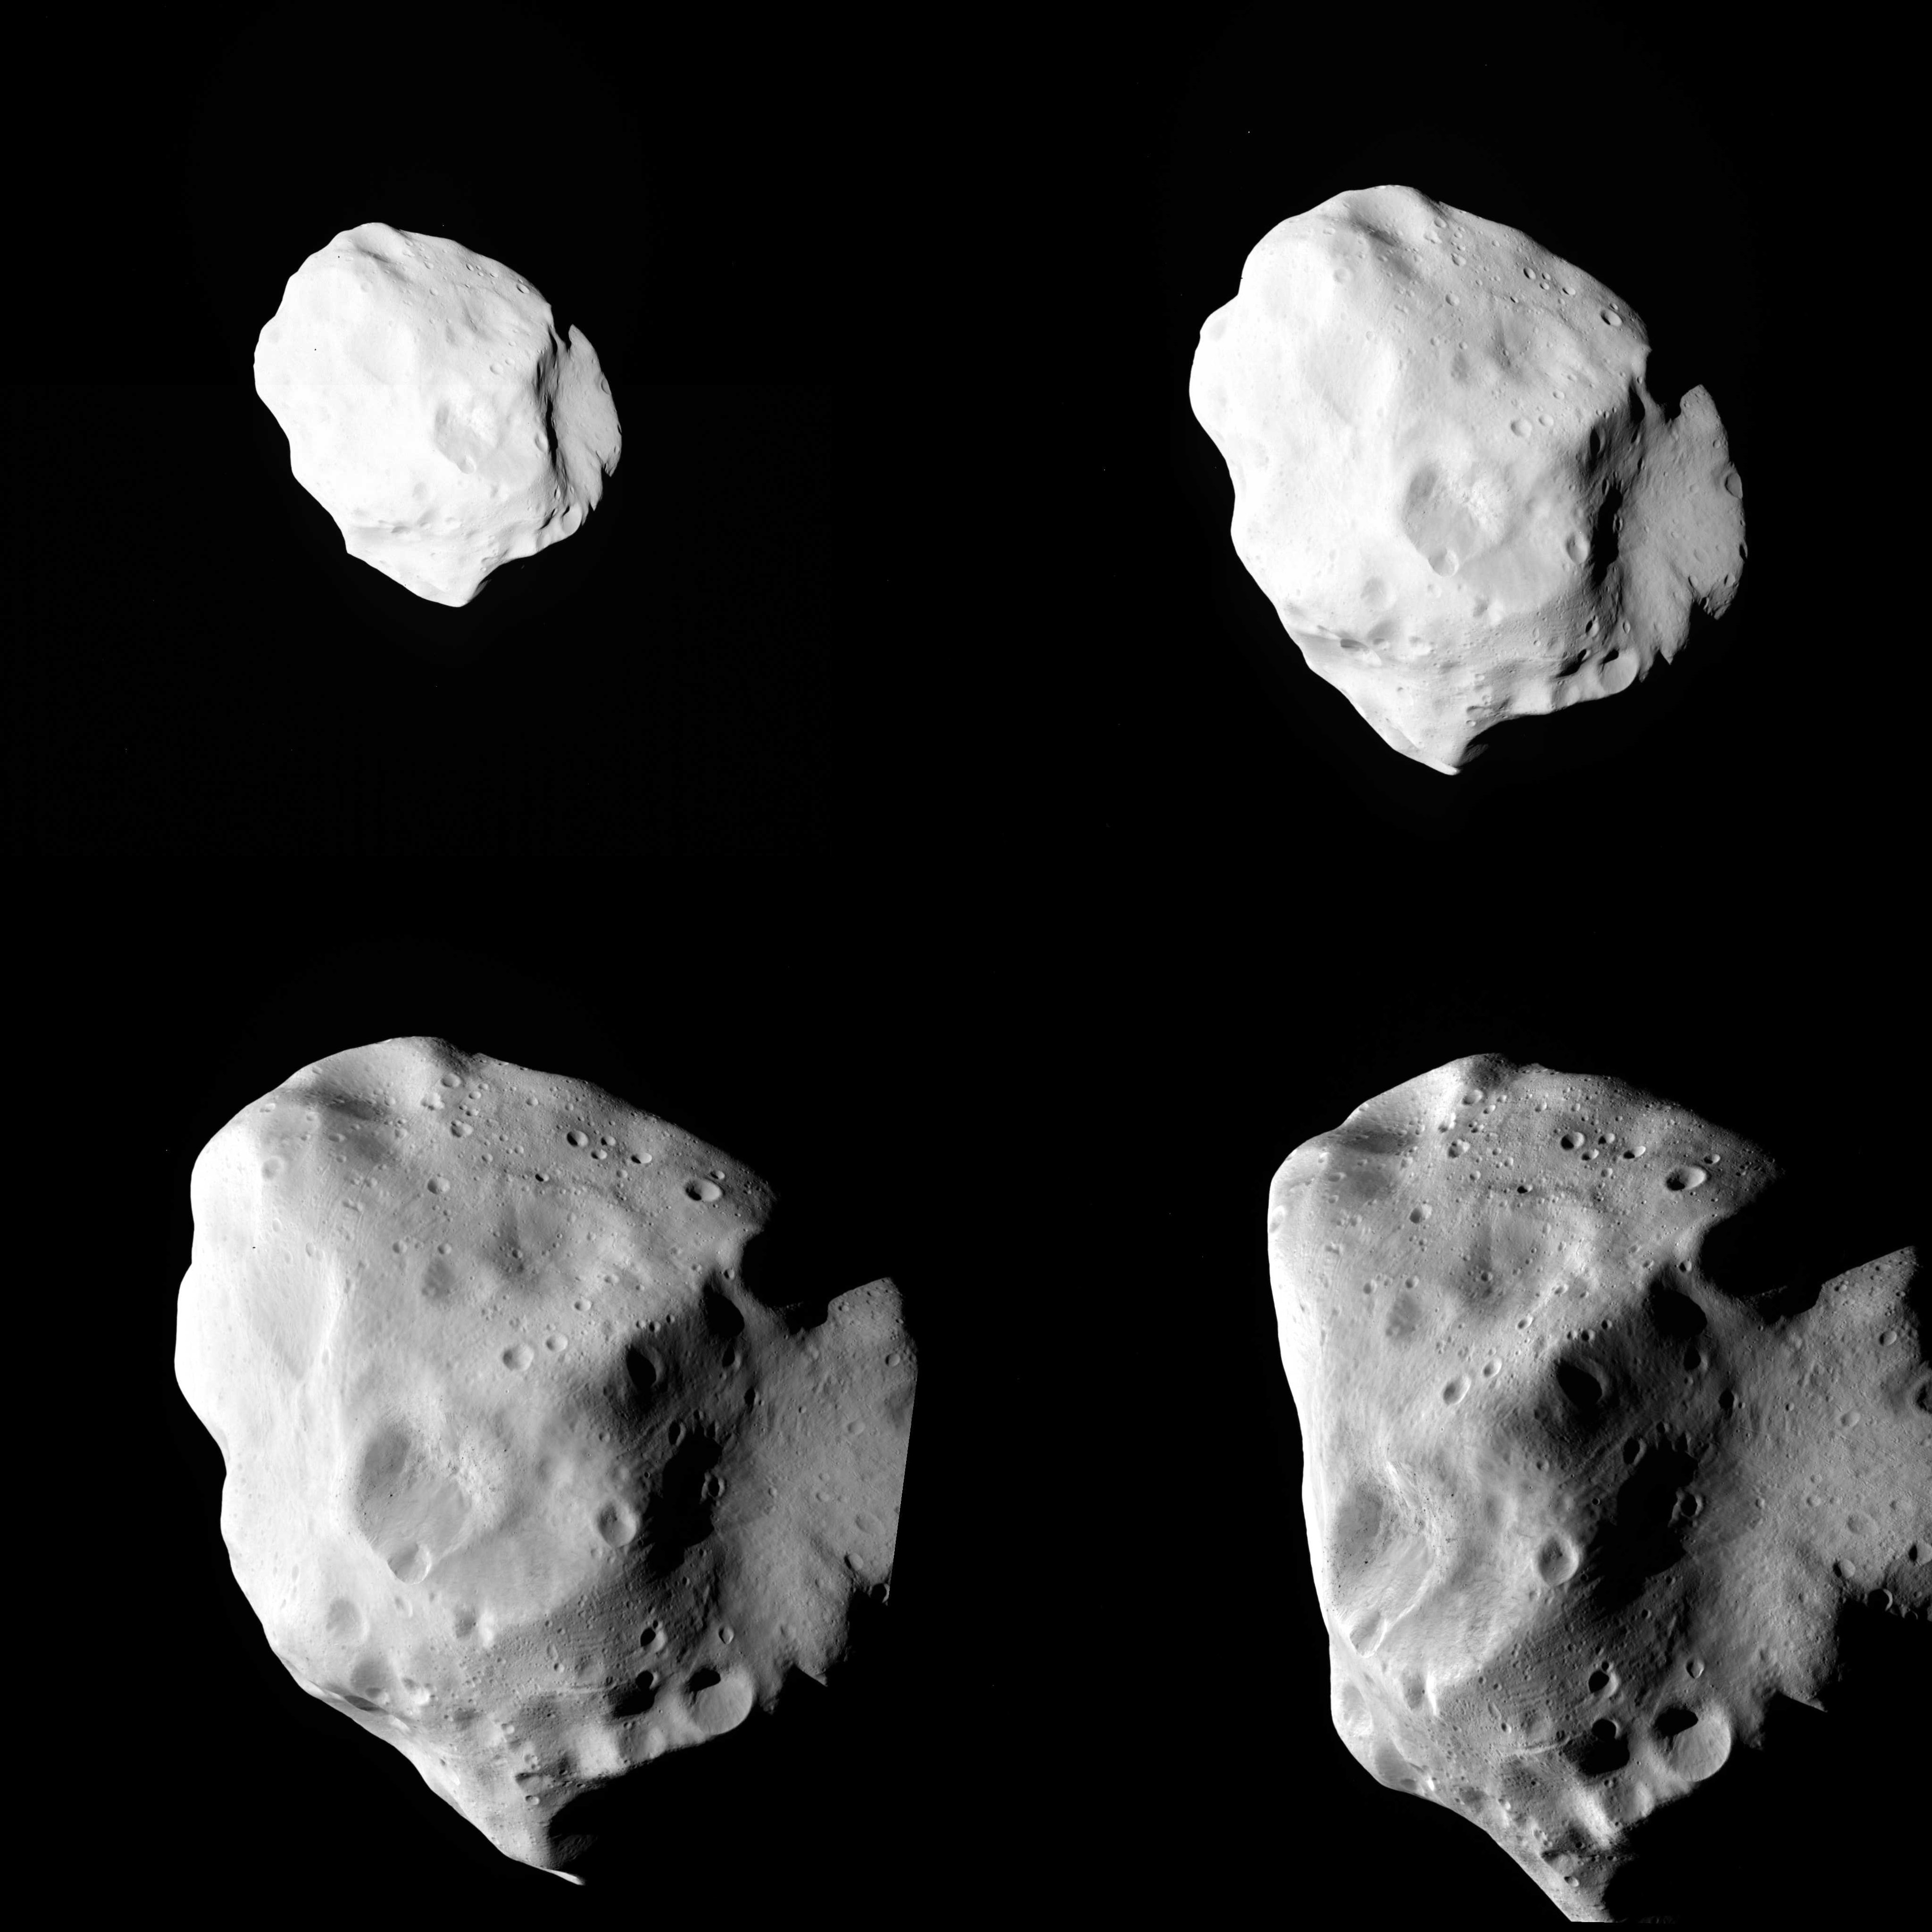 Asteroid Lutetia in Four Parts